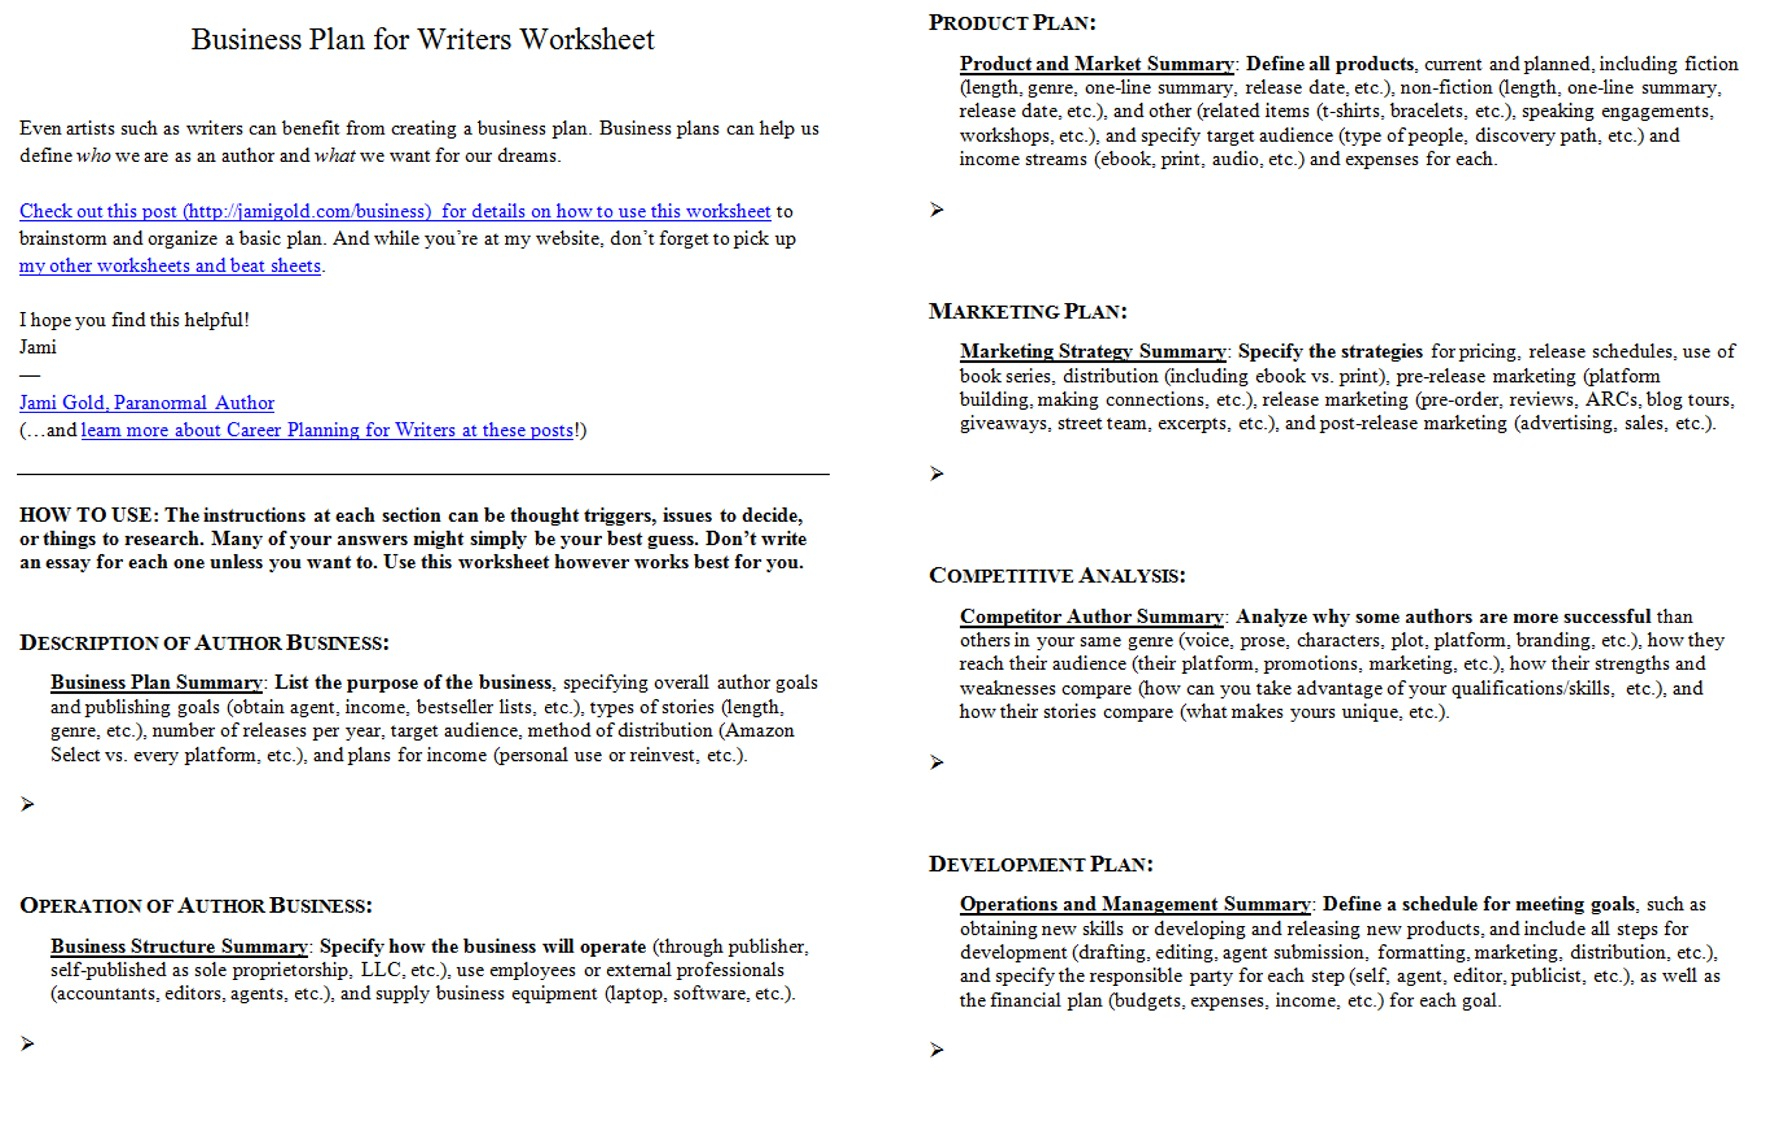 Aldiablosus  Winning Worksheets For Writers  Jami Gold Paranormal Author With Hot Screen Shot Of Both Pages Of The Business Plan For Writers Worksheet With Divine Ks Science Worksheets Also Simple Algebra Equations Worksheet In Addition Outline Of Human Body Worksheet And Religious Worksheets As Well As Worksheet On Action Words Additionally Adverbs Of Manner Worksheet From Jamigoldcom With Aldiablosus  Hot Worksheets For Writers  Jami Gold Paranormal Author With Divine Screen Shot Of Both Pages Of The Business Plan For Writers Worksheet And Winning Ks Science Worksheets Also Simple Algebra Equations Worksheet In Addition Outline Of Human Body Worksheet From Jamigoldcom